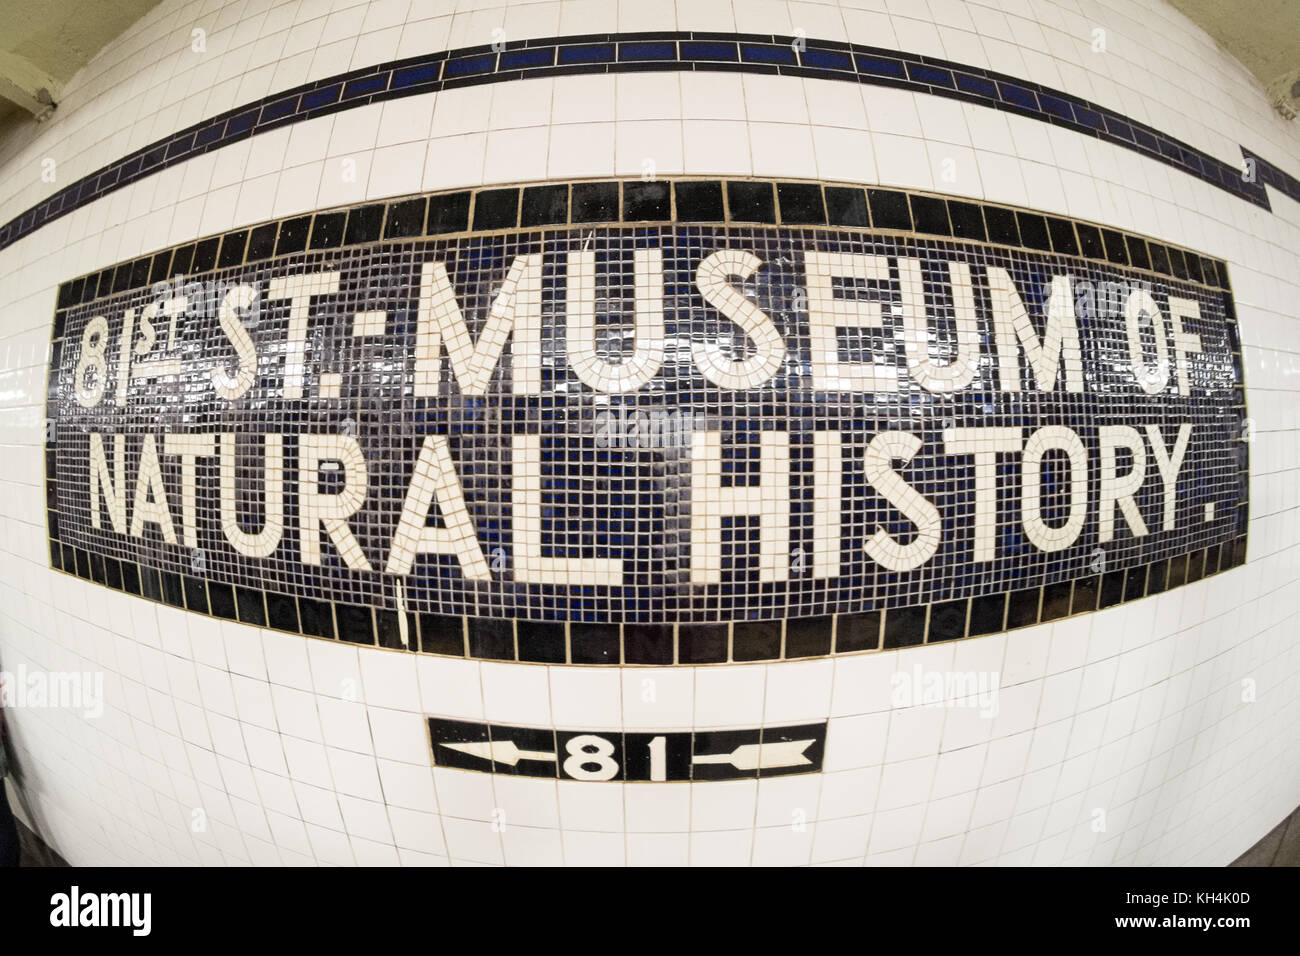 Mosaic sign for the Museum of American Natural History, Central Park West, manhattan, New York City, United states - Stock Image